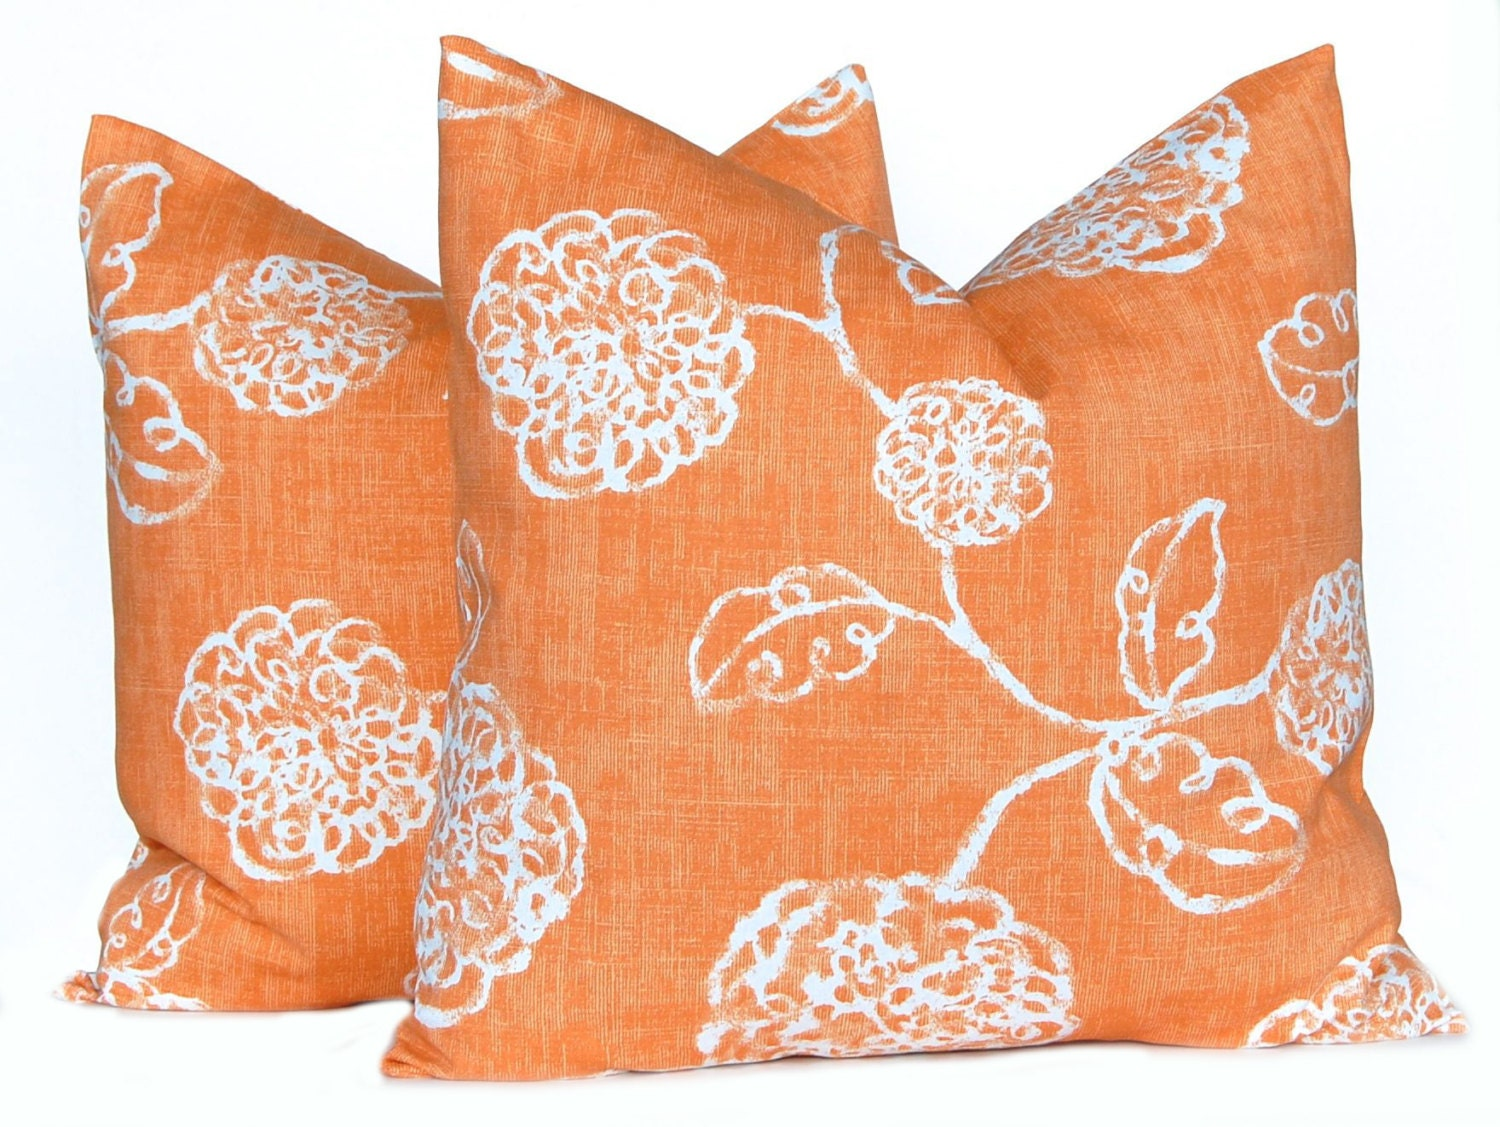 Autumn Throw Pillow Covers : Fall Pillow Covers Orange and White Pillow Covers Autumn